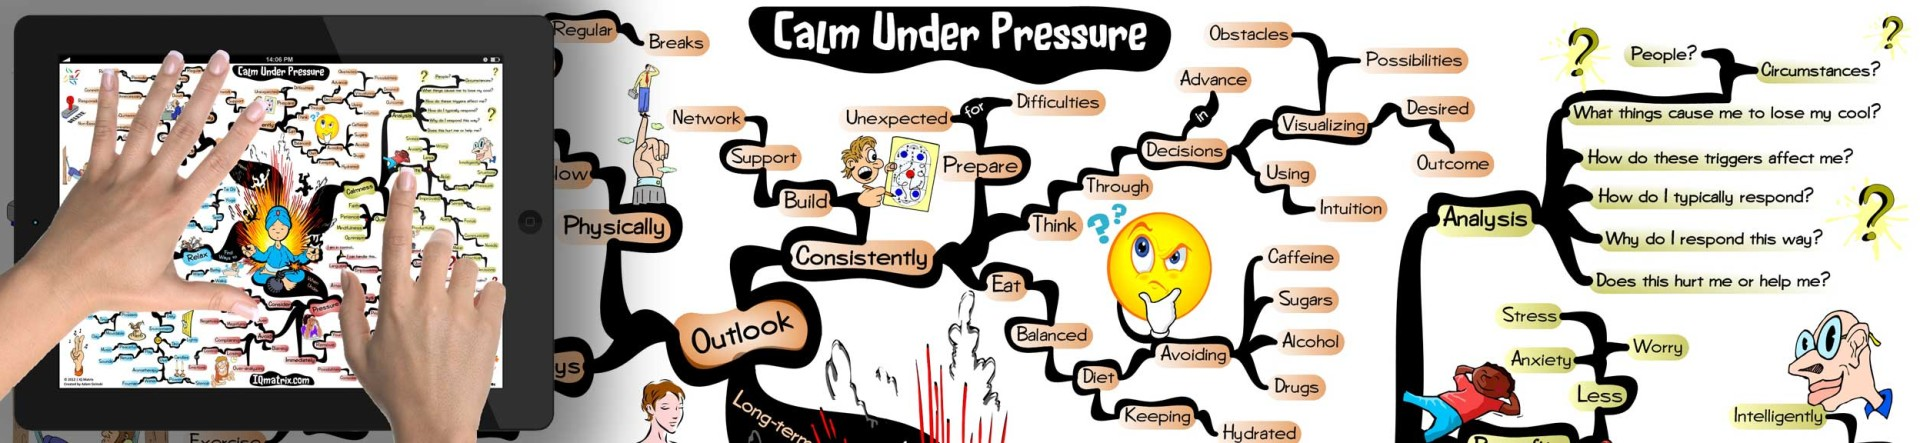 How to stay under. Calm clipart calmness